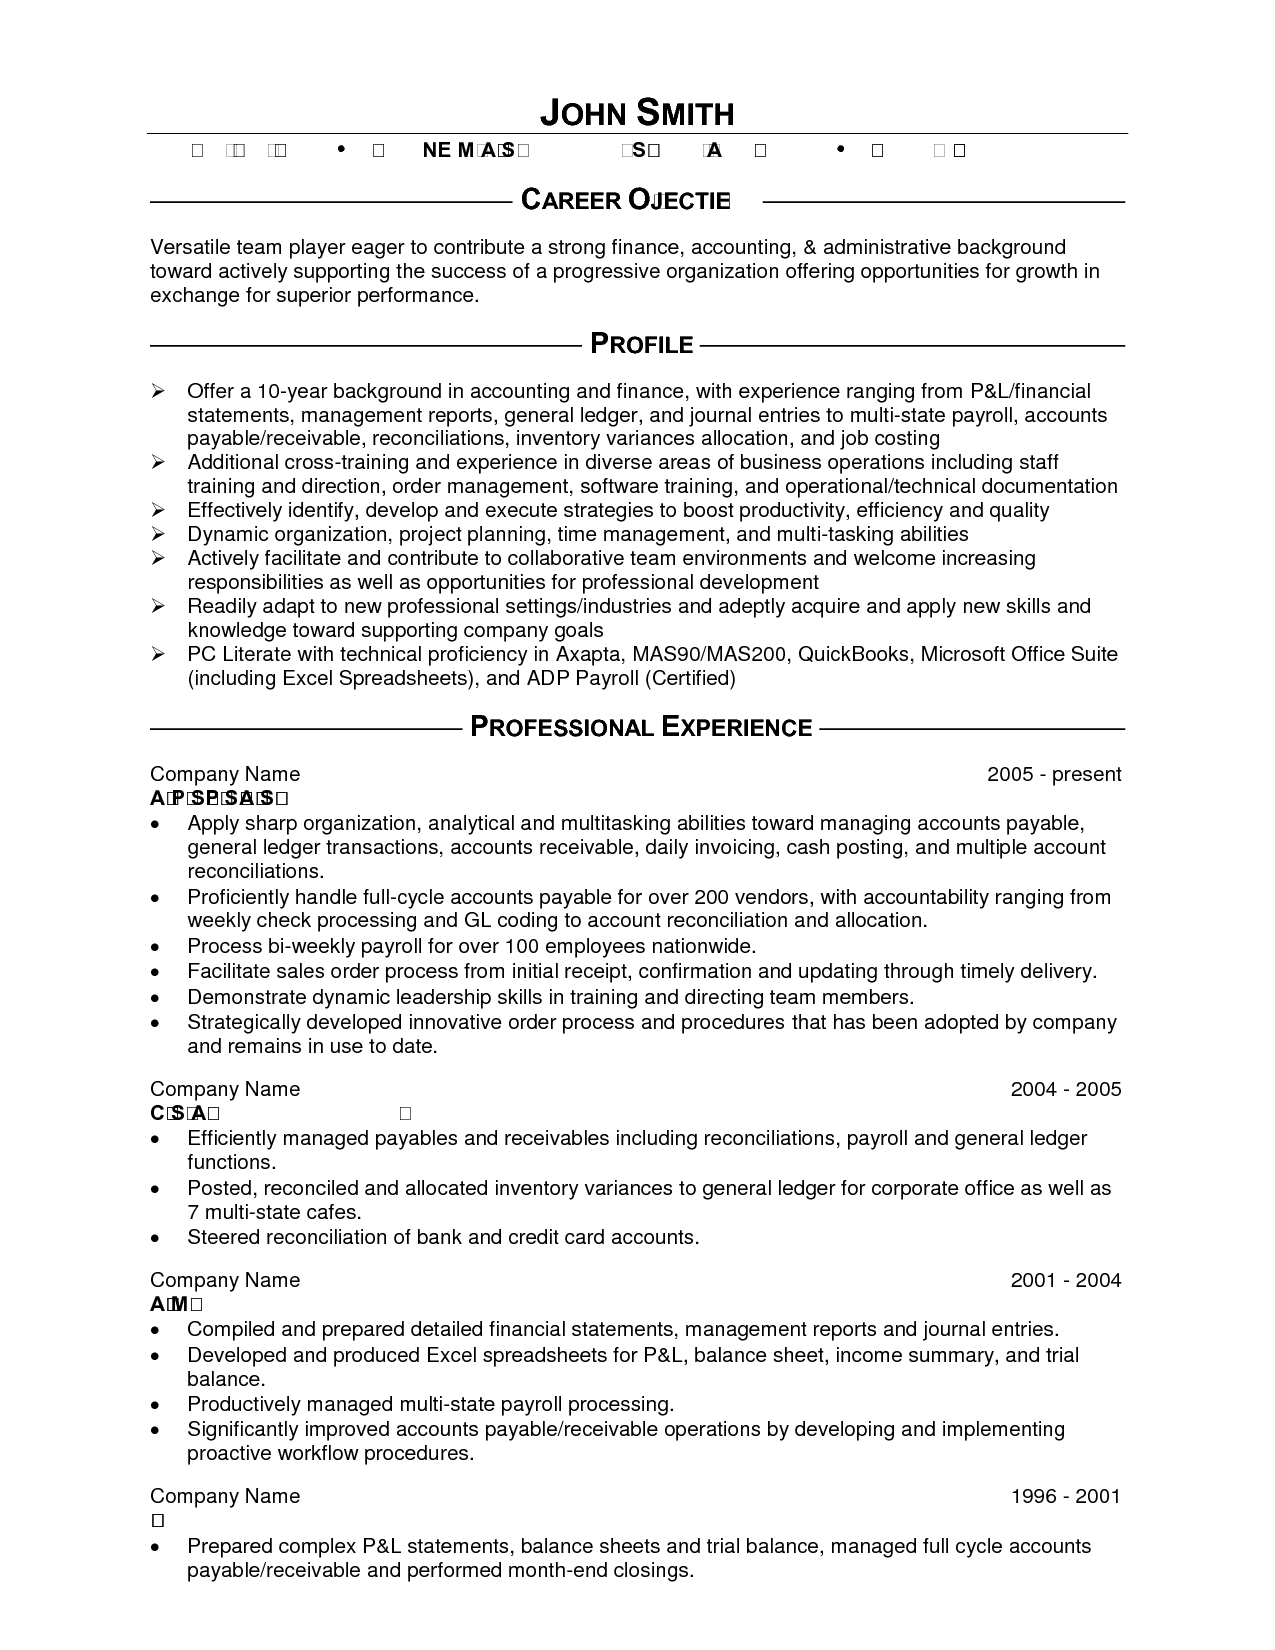 Resume Financial Accountant Resume Example resume sample of accounting clerk position httpwww resumecareer info